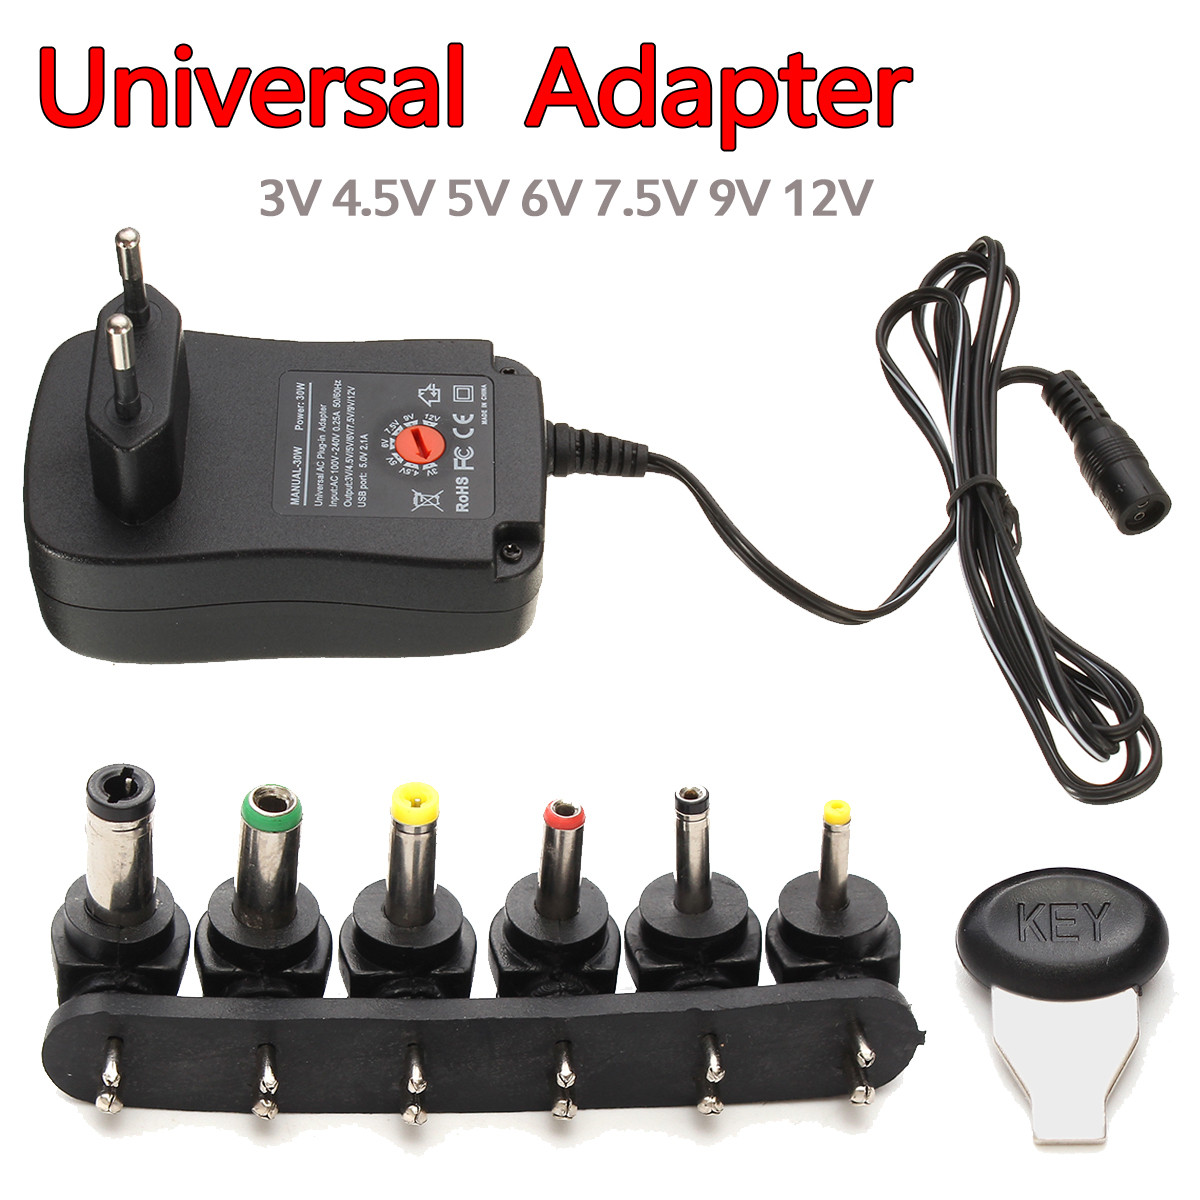 Universal 3/4.5/5/6/7.5/9/12V Voltage Converter Power Adapter Supply with USB Port EU Plug